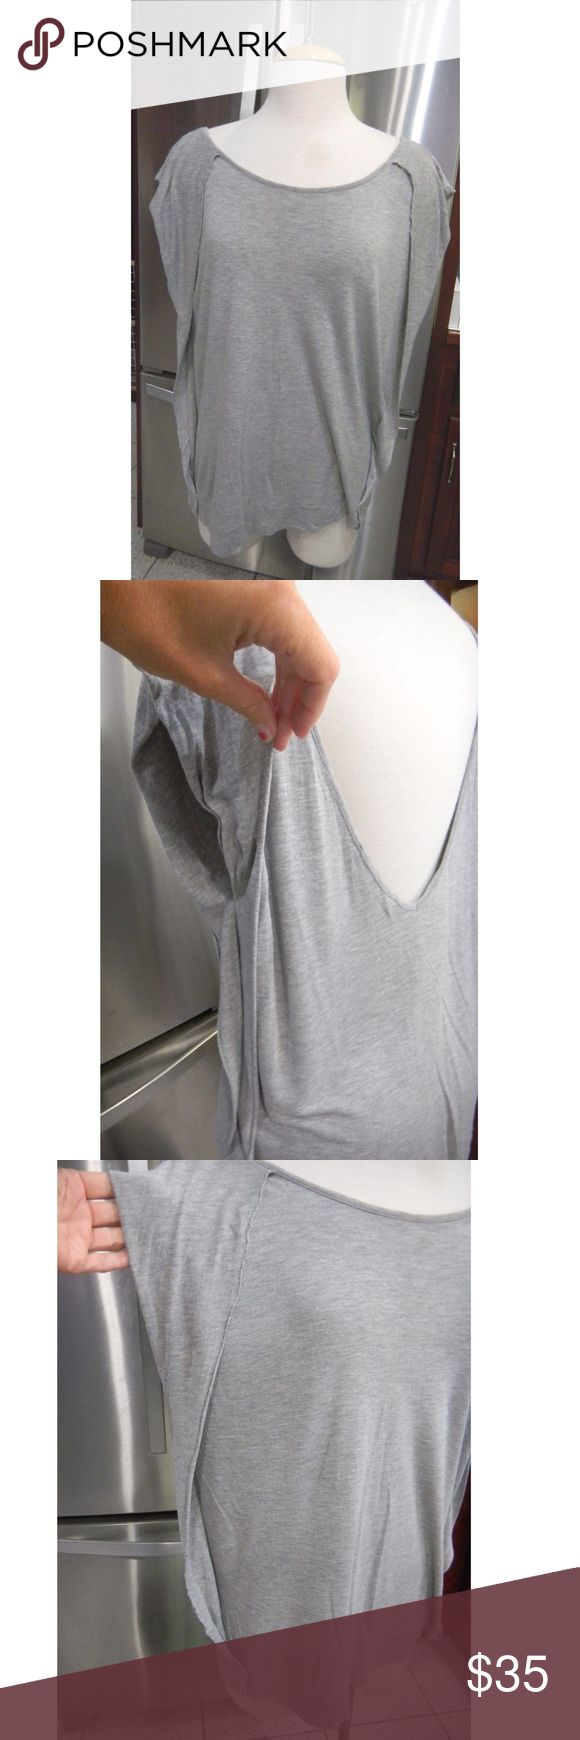 Allsaints grey Jules top sz us6 V back. Pls noted there is a hole on the back All Saints Tops